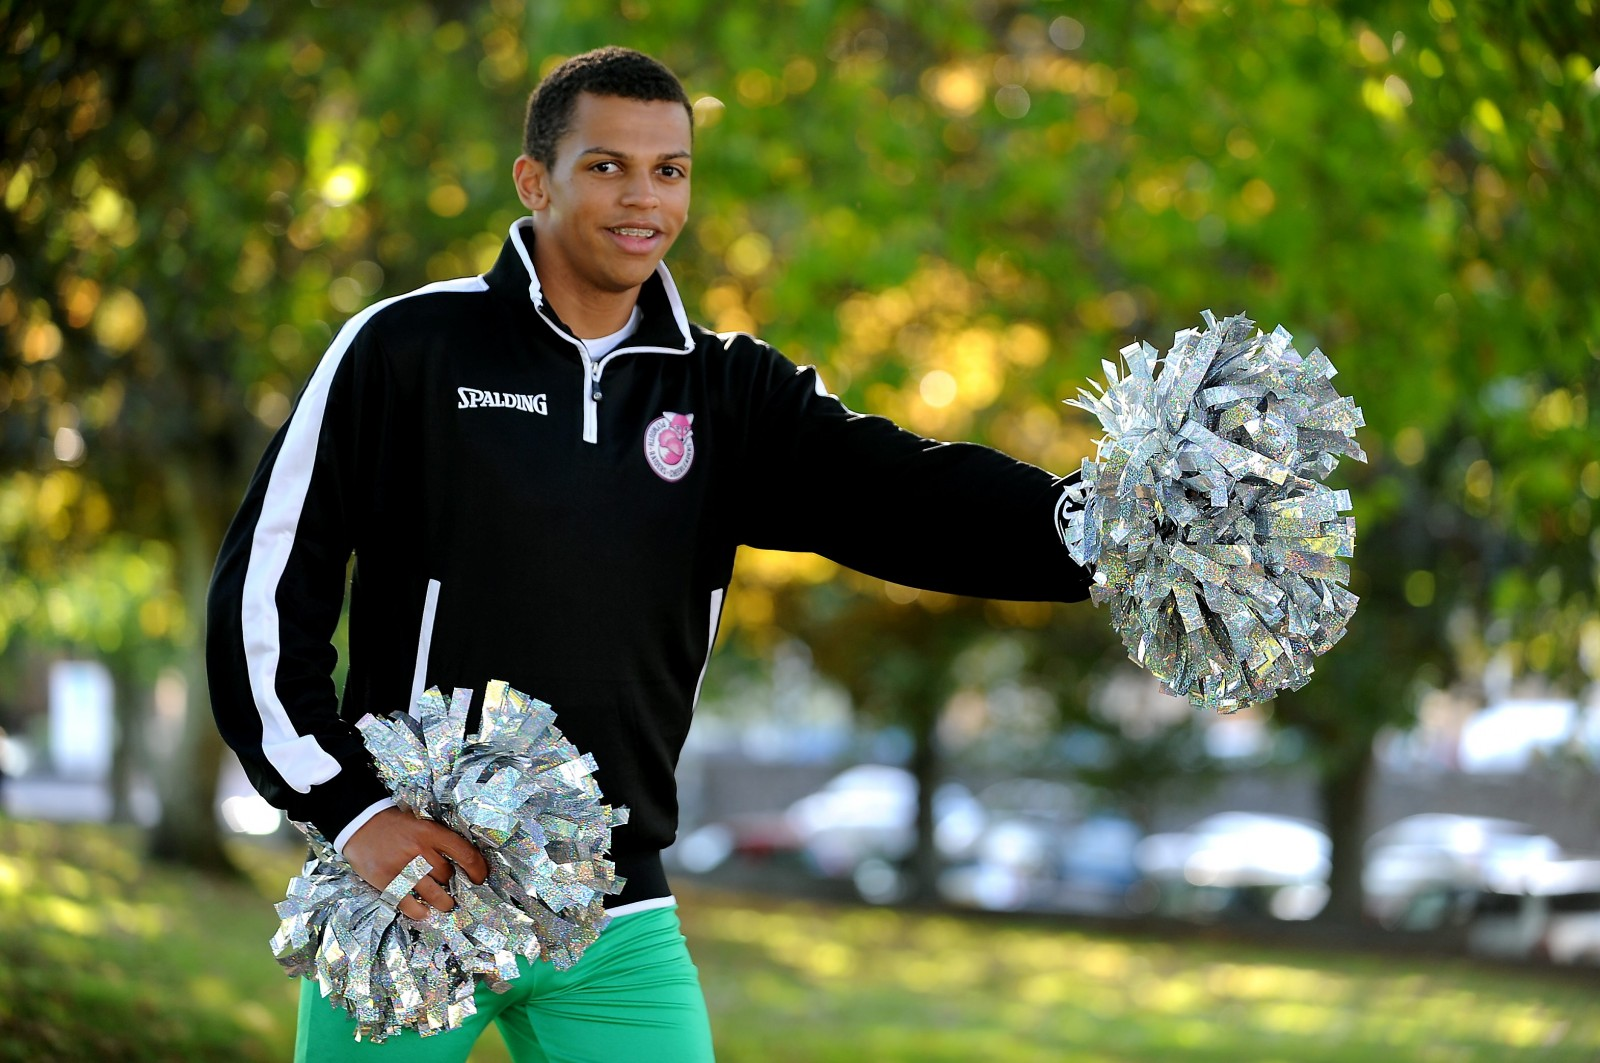 Promising teen basketball player gives up the game to become a cheerleader